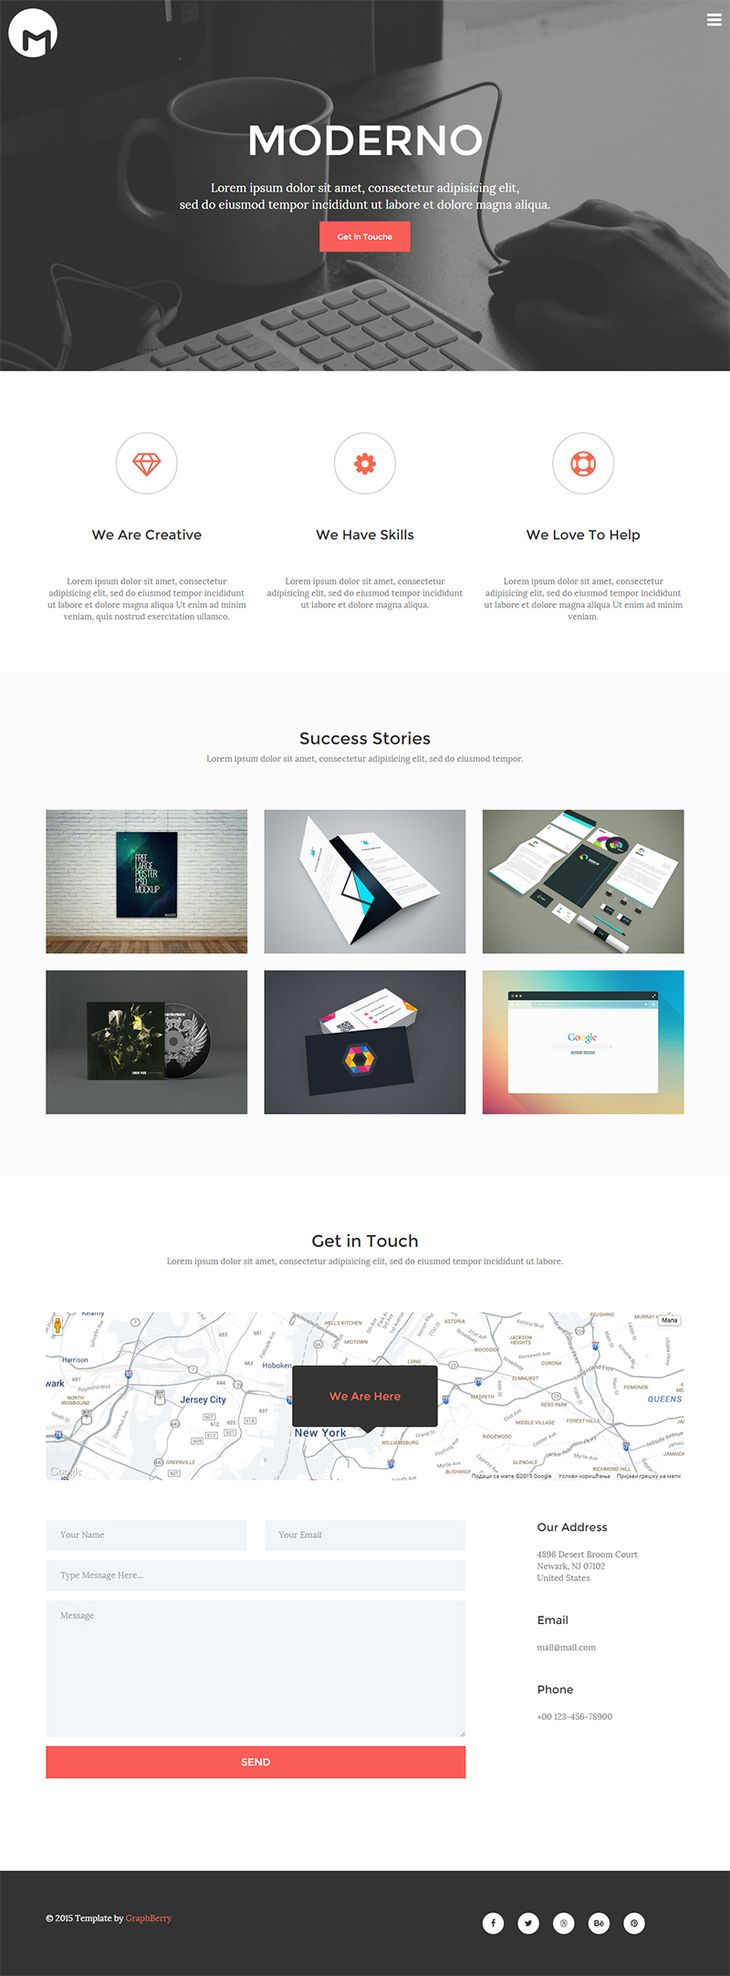 Moderno - Free HTML5 Responsive Template preview